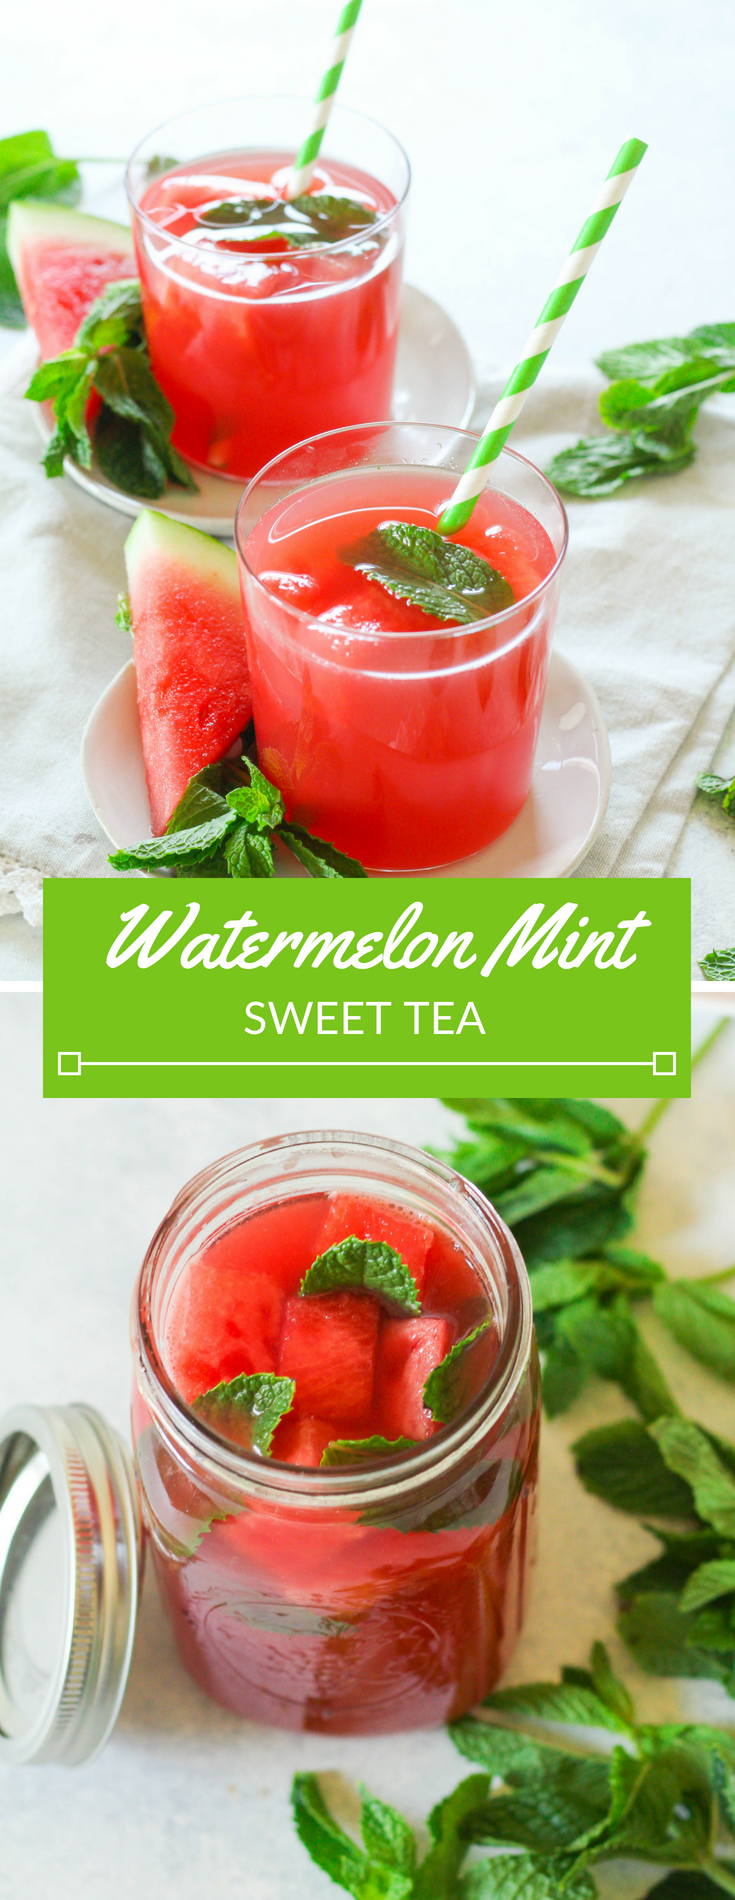 Watermelon Mint Sweet Tea is a refreshing upgrade from your regular tea routine! Watermelon puree is mixed with mint green tea and garnished with frozen watermelon cubes.